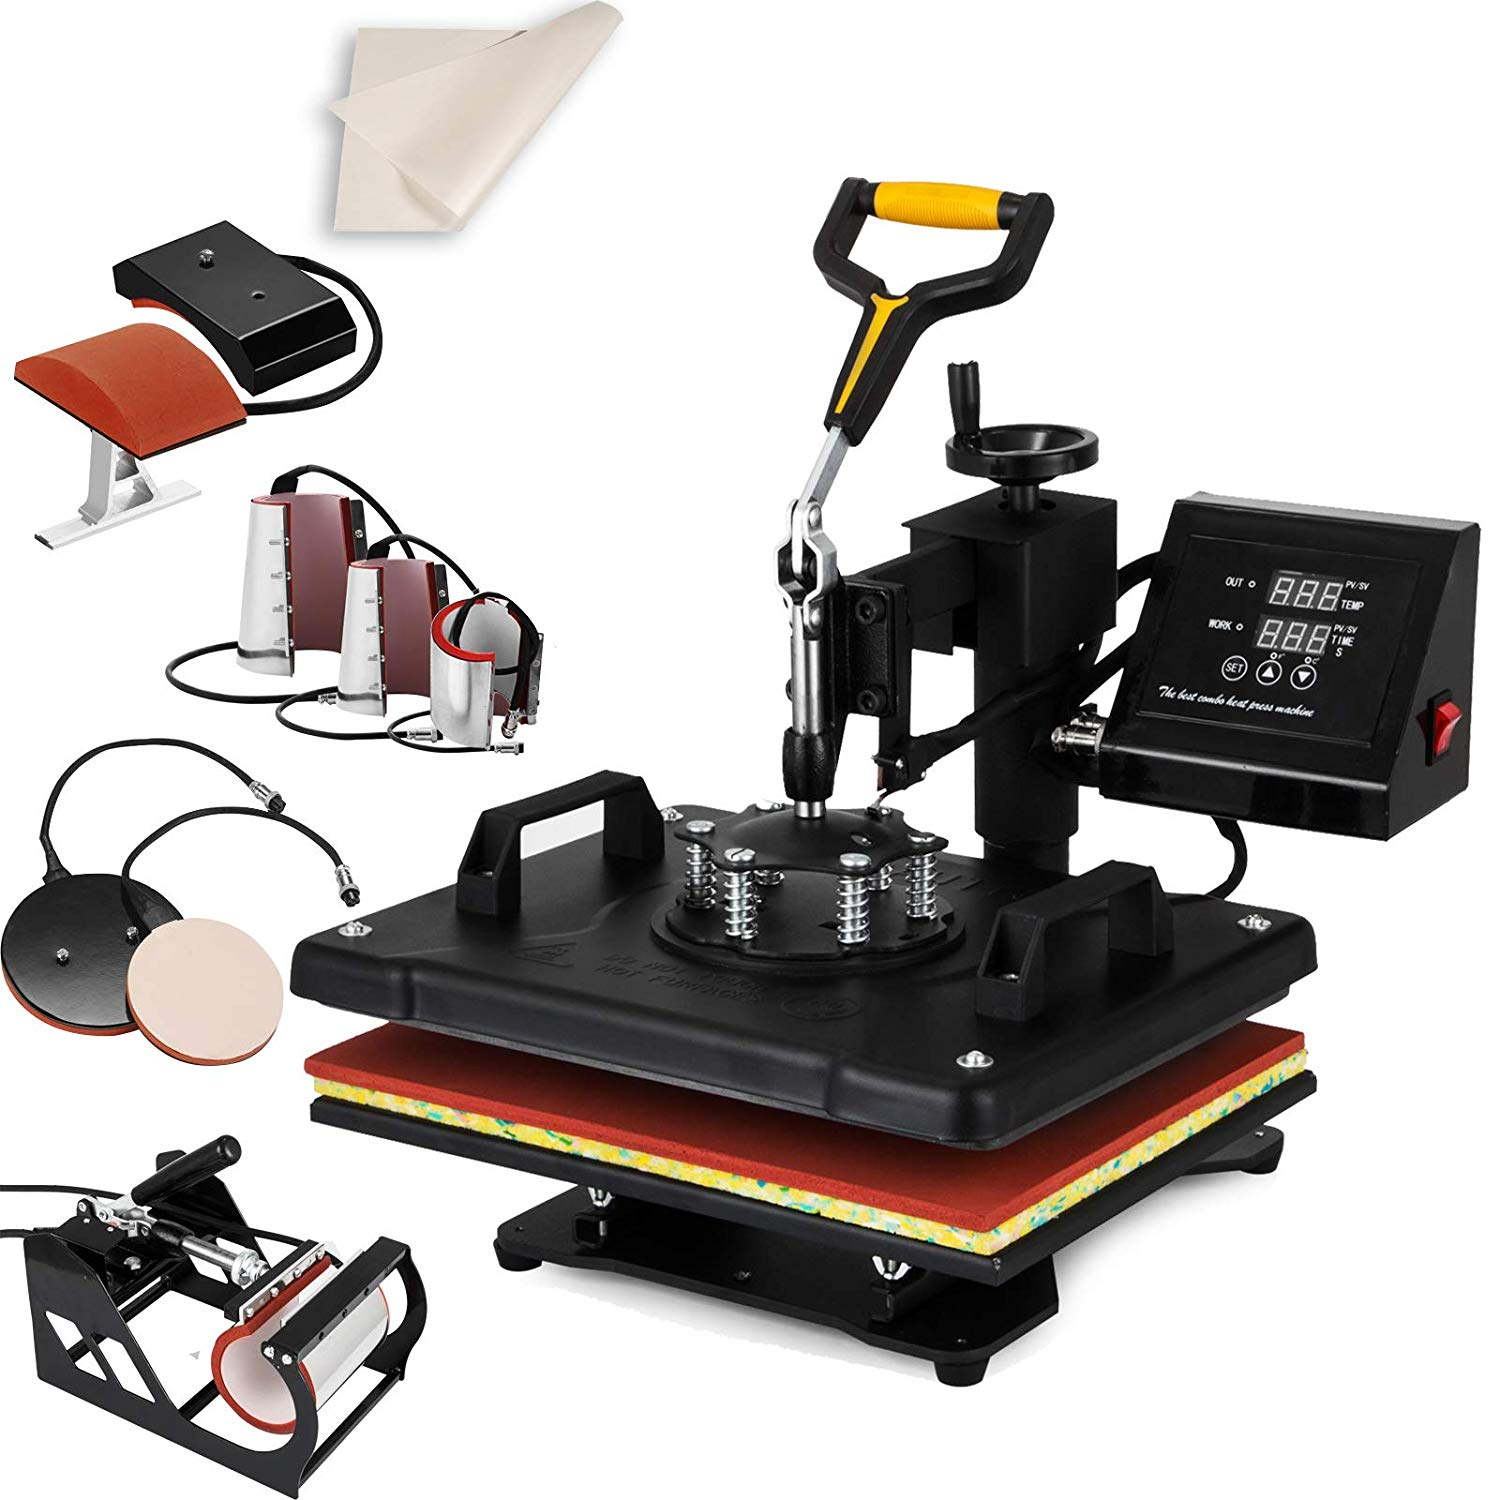 "67c564df Get Quotations · SHZOND Heat Press 12""x 15"" 8 in 1 Combo Heat Transfer  Machine Multifunctional"